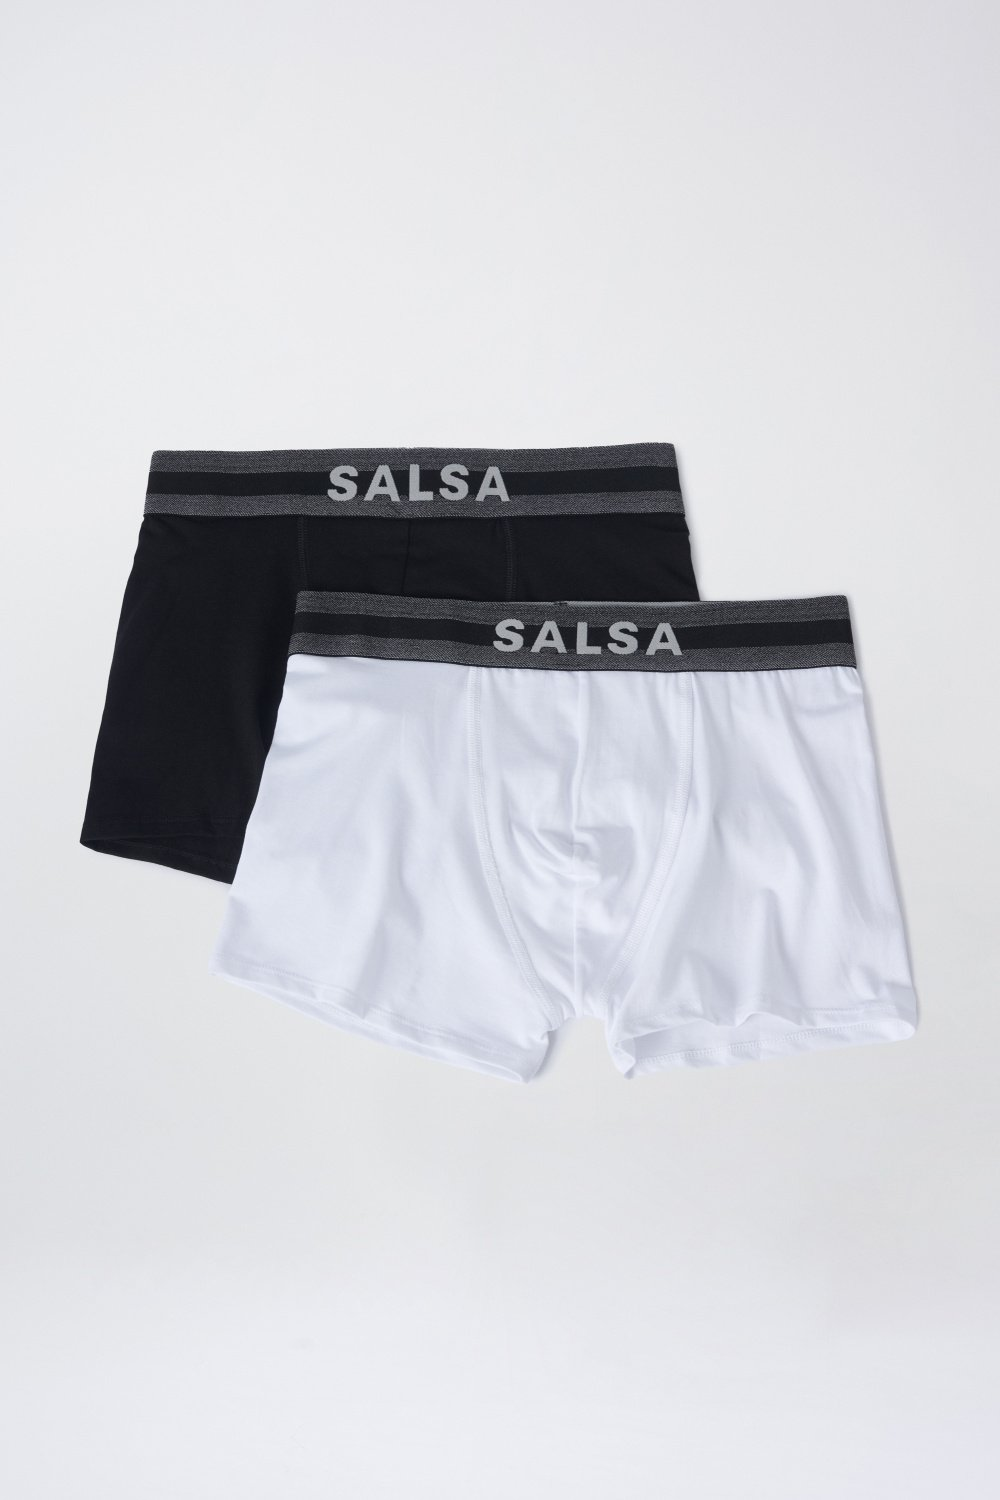 Pack White + Black boxers - Salsa